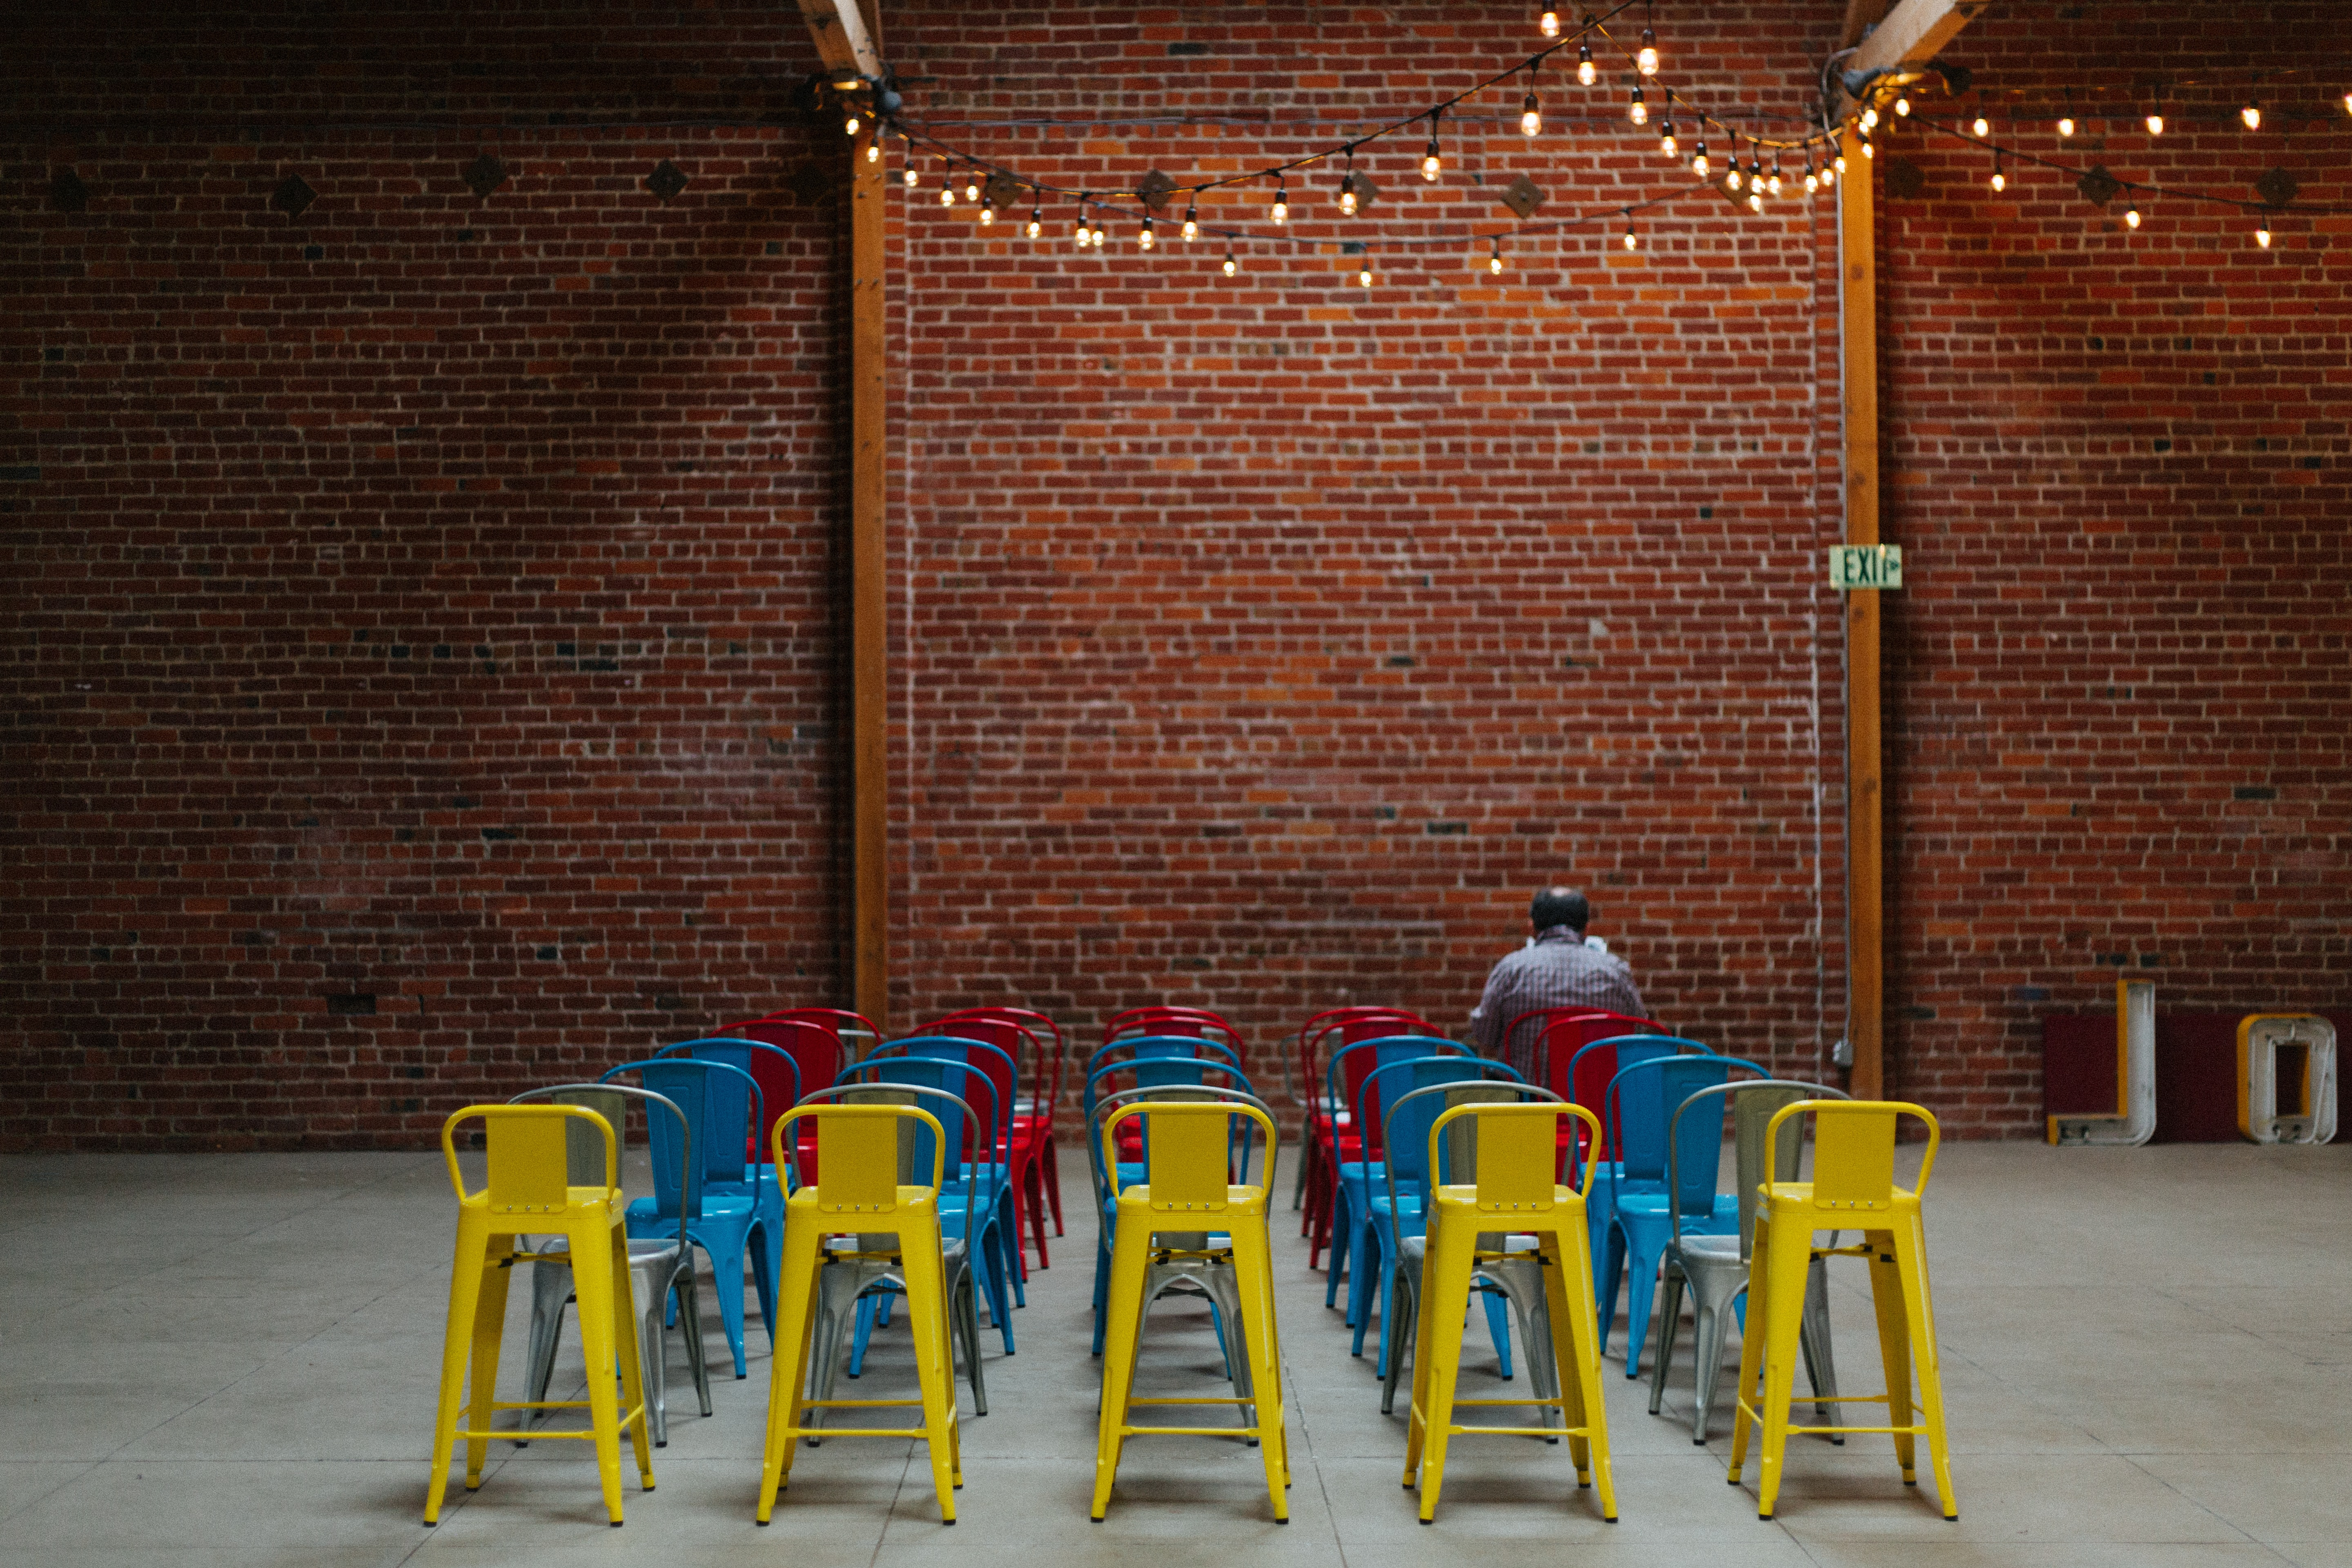 chairs set up in a room for an event